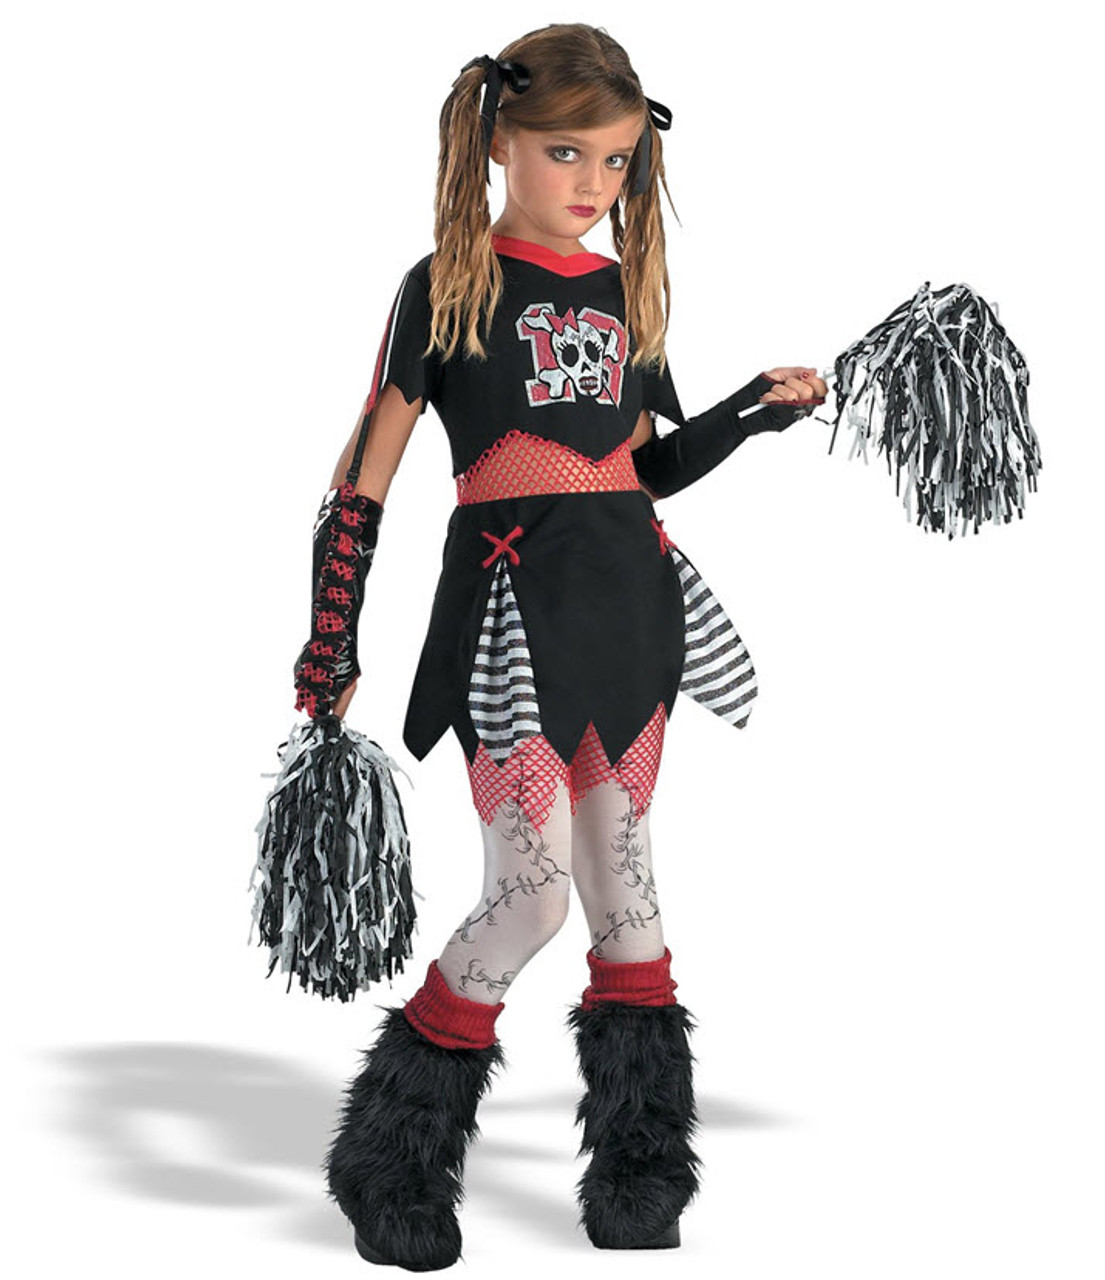 Girlu0027s Gothic Cheerleader Costume  sc 1 st  Halloween Express : monster cheerleader costume  - Germanpascual.Com